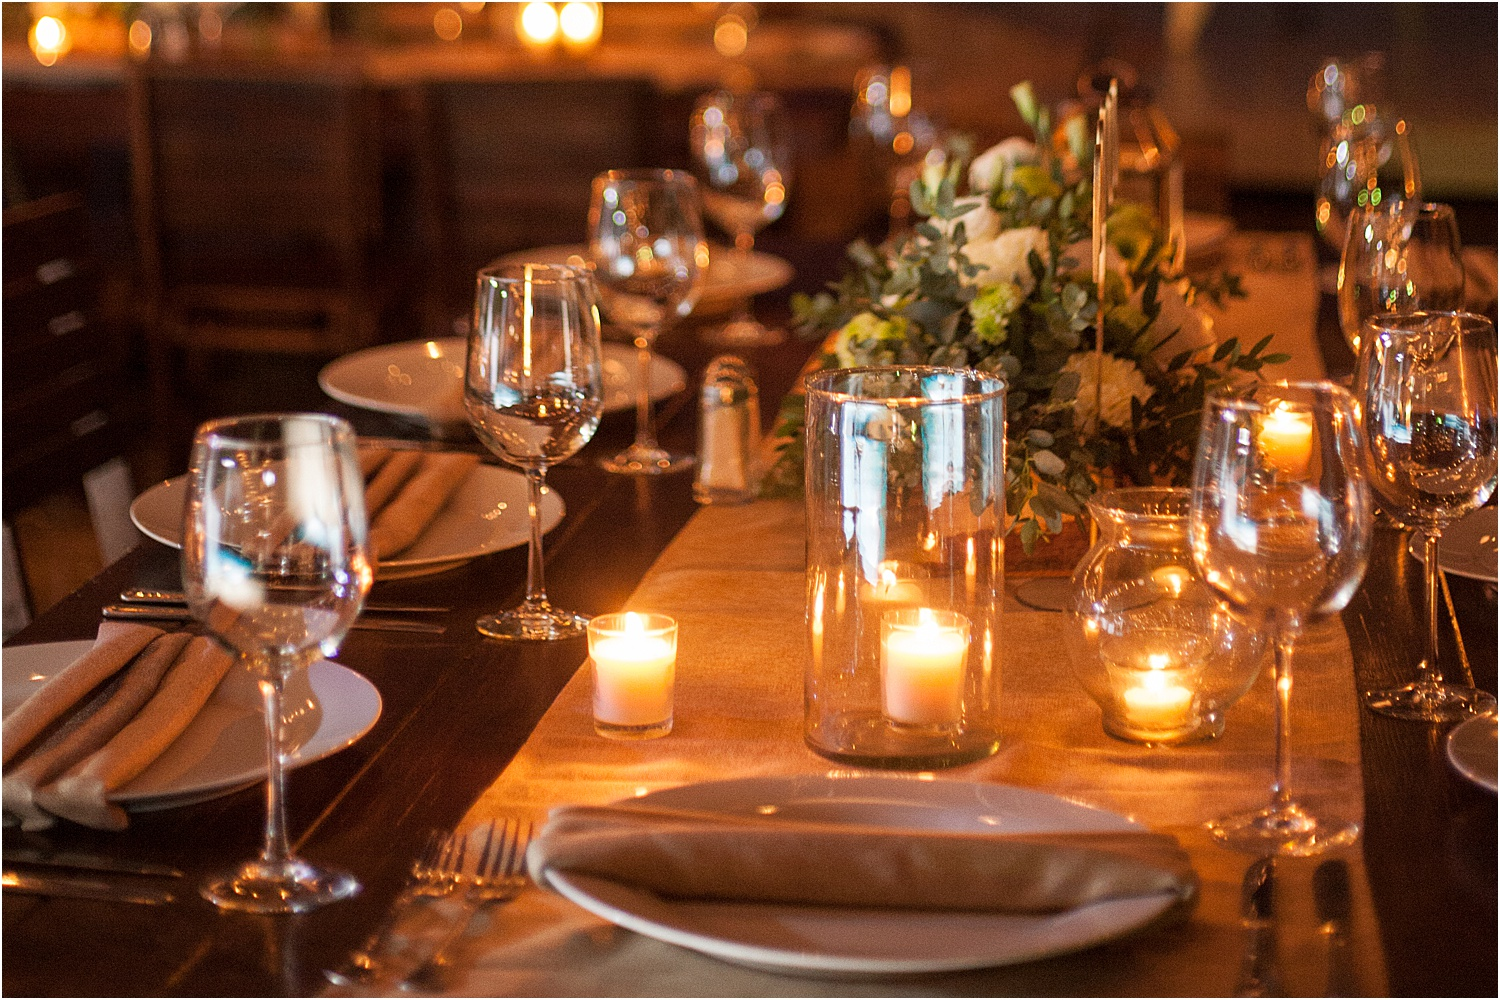 candle-lit-reception-wedding-setup.jpg